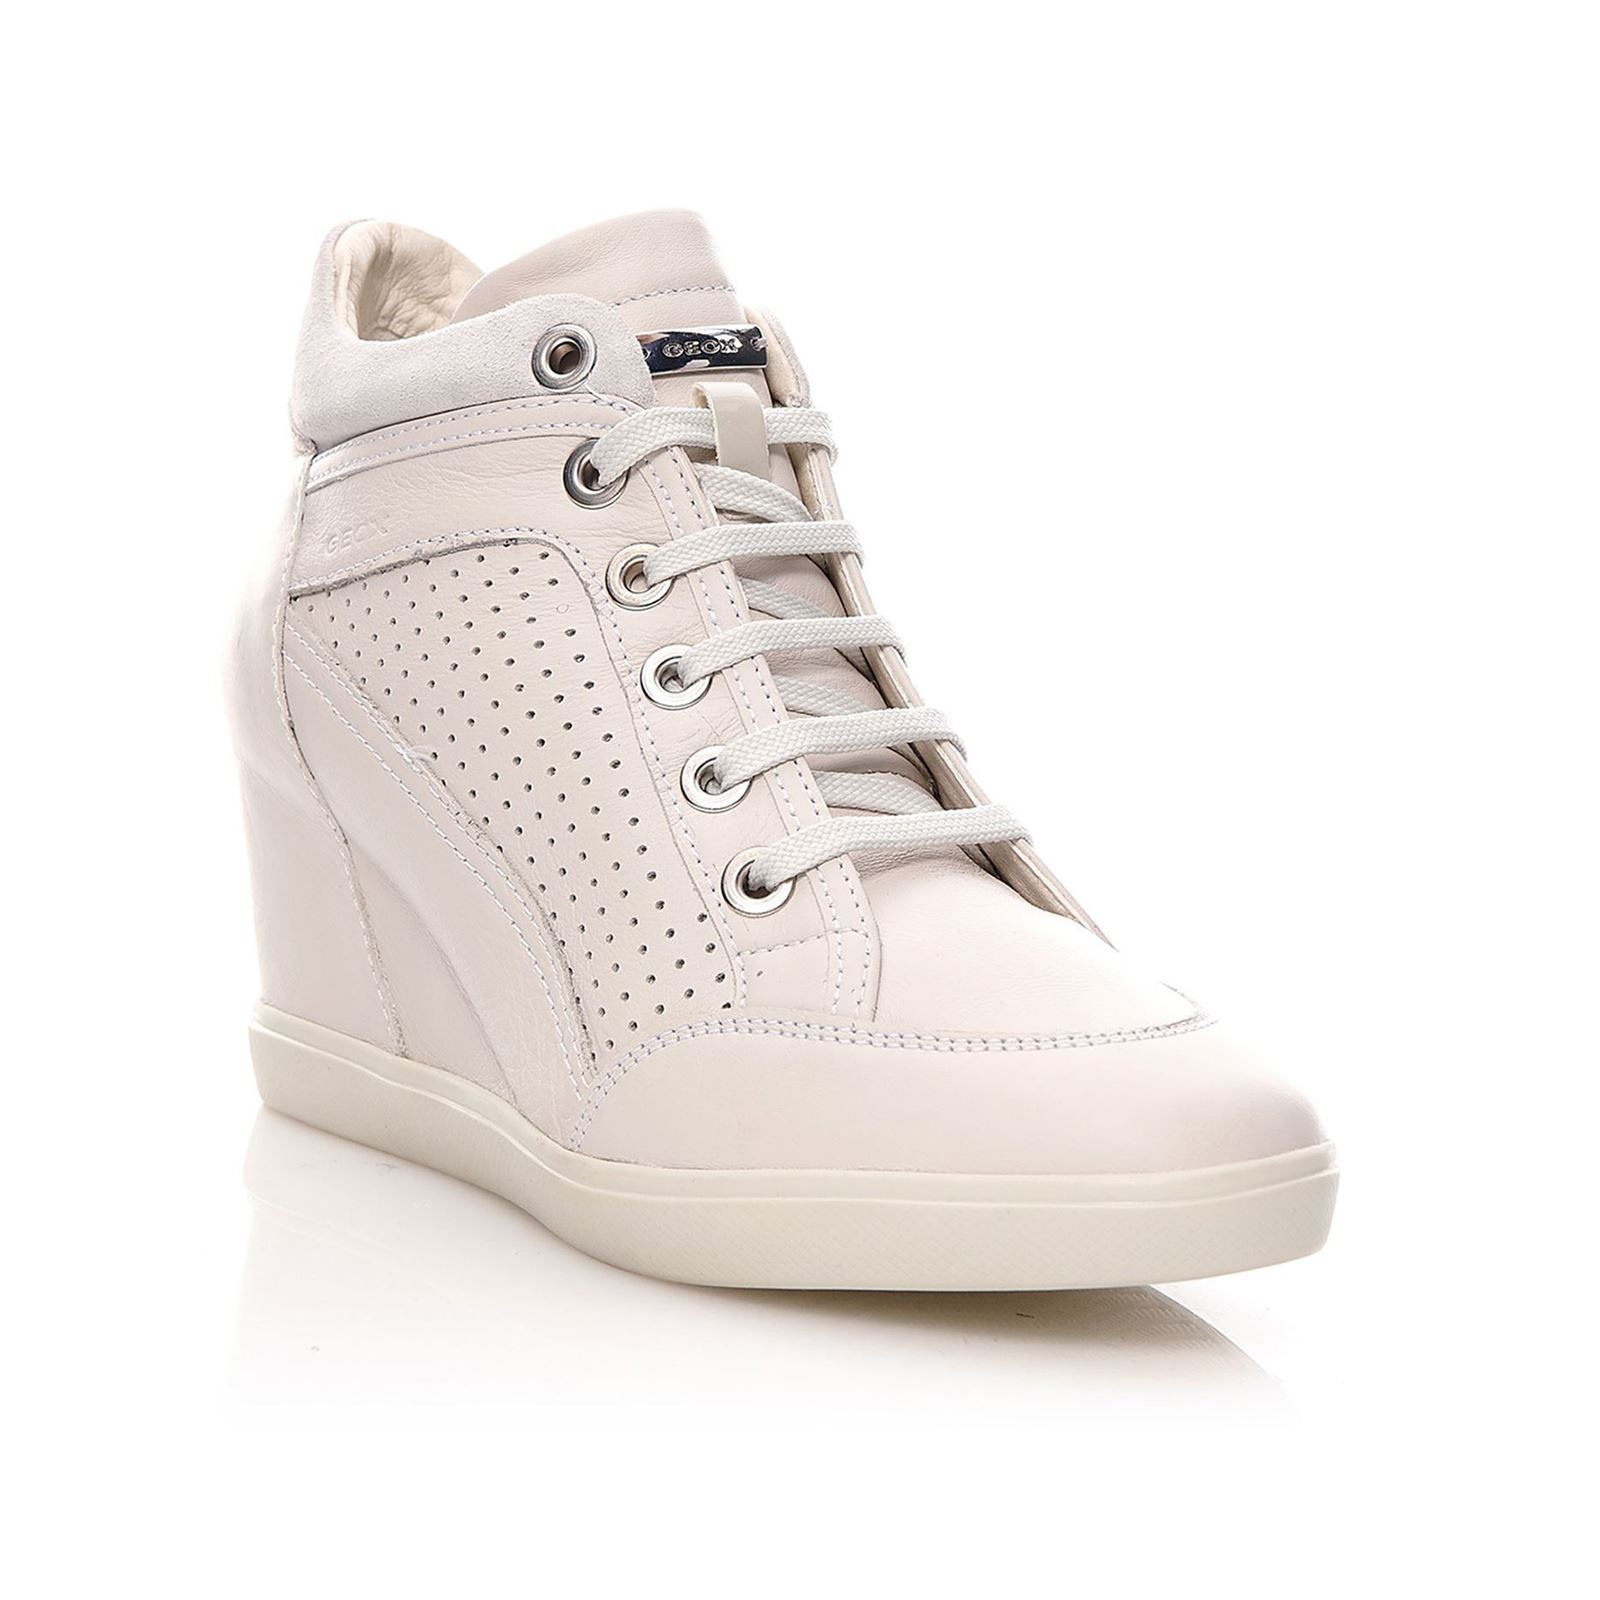 Geox Eleni Sneakers in pelle bianco - mainstreetblytheville.org 14d10ca2354